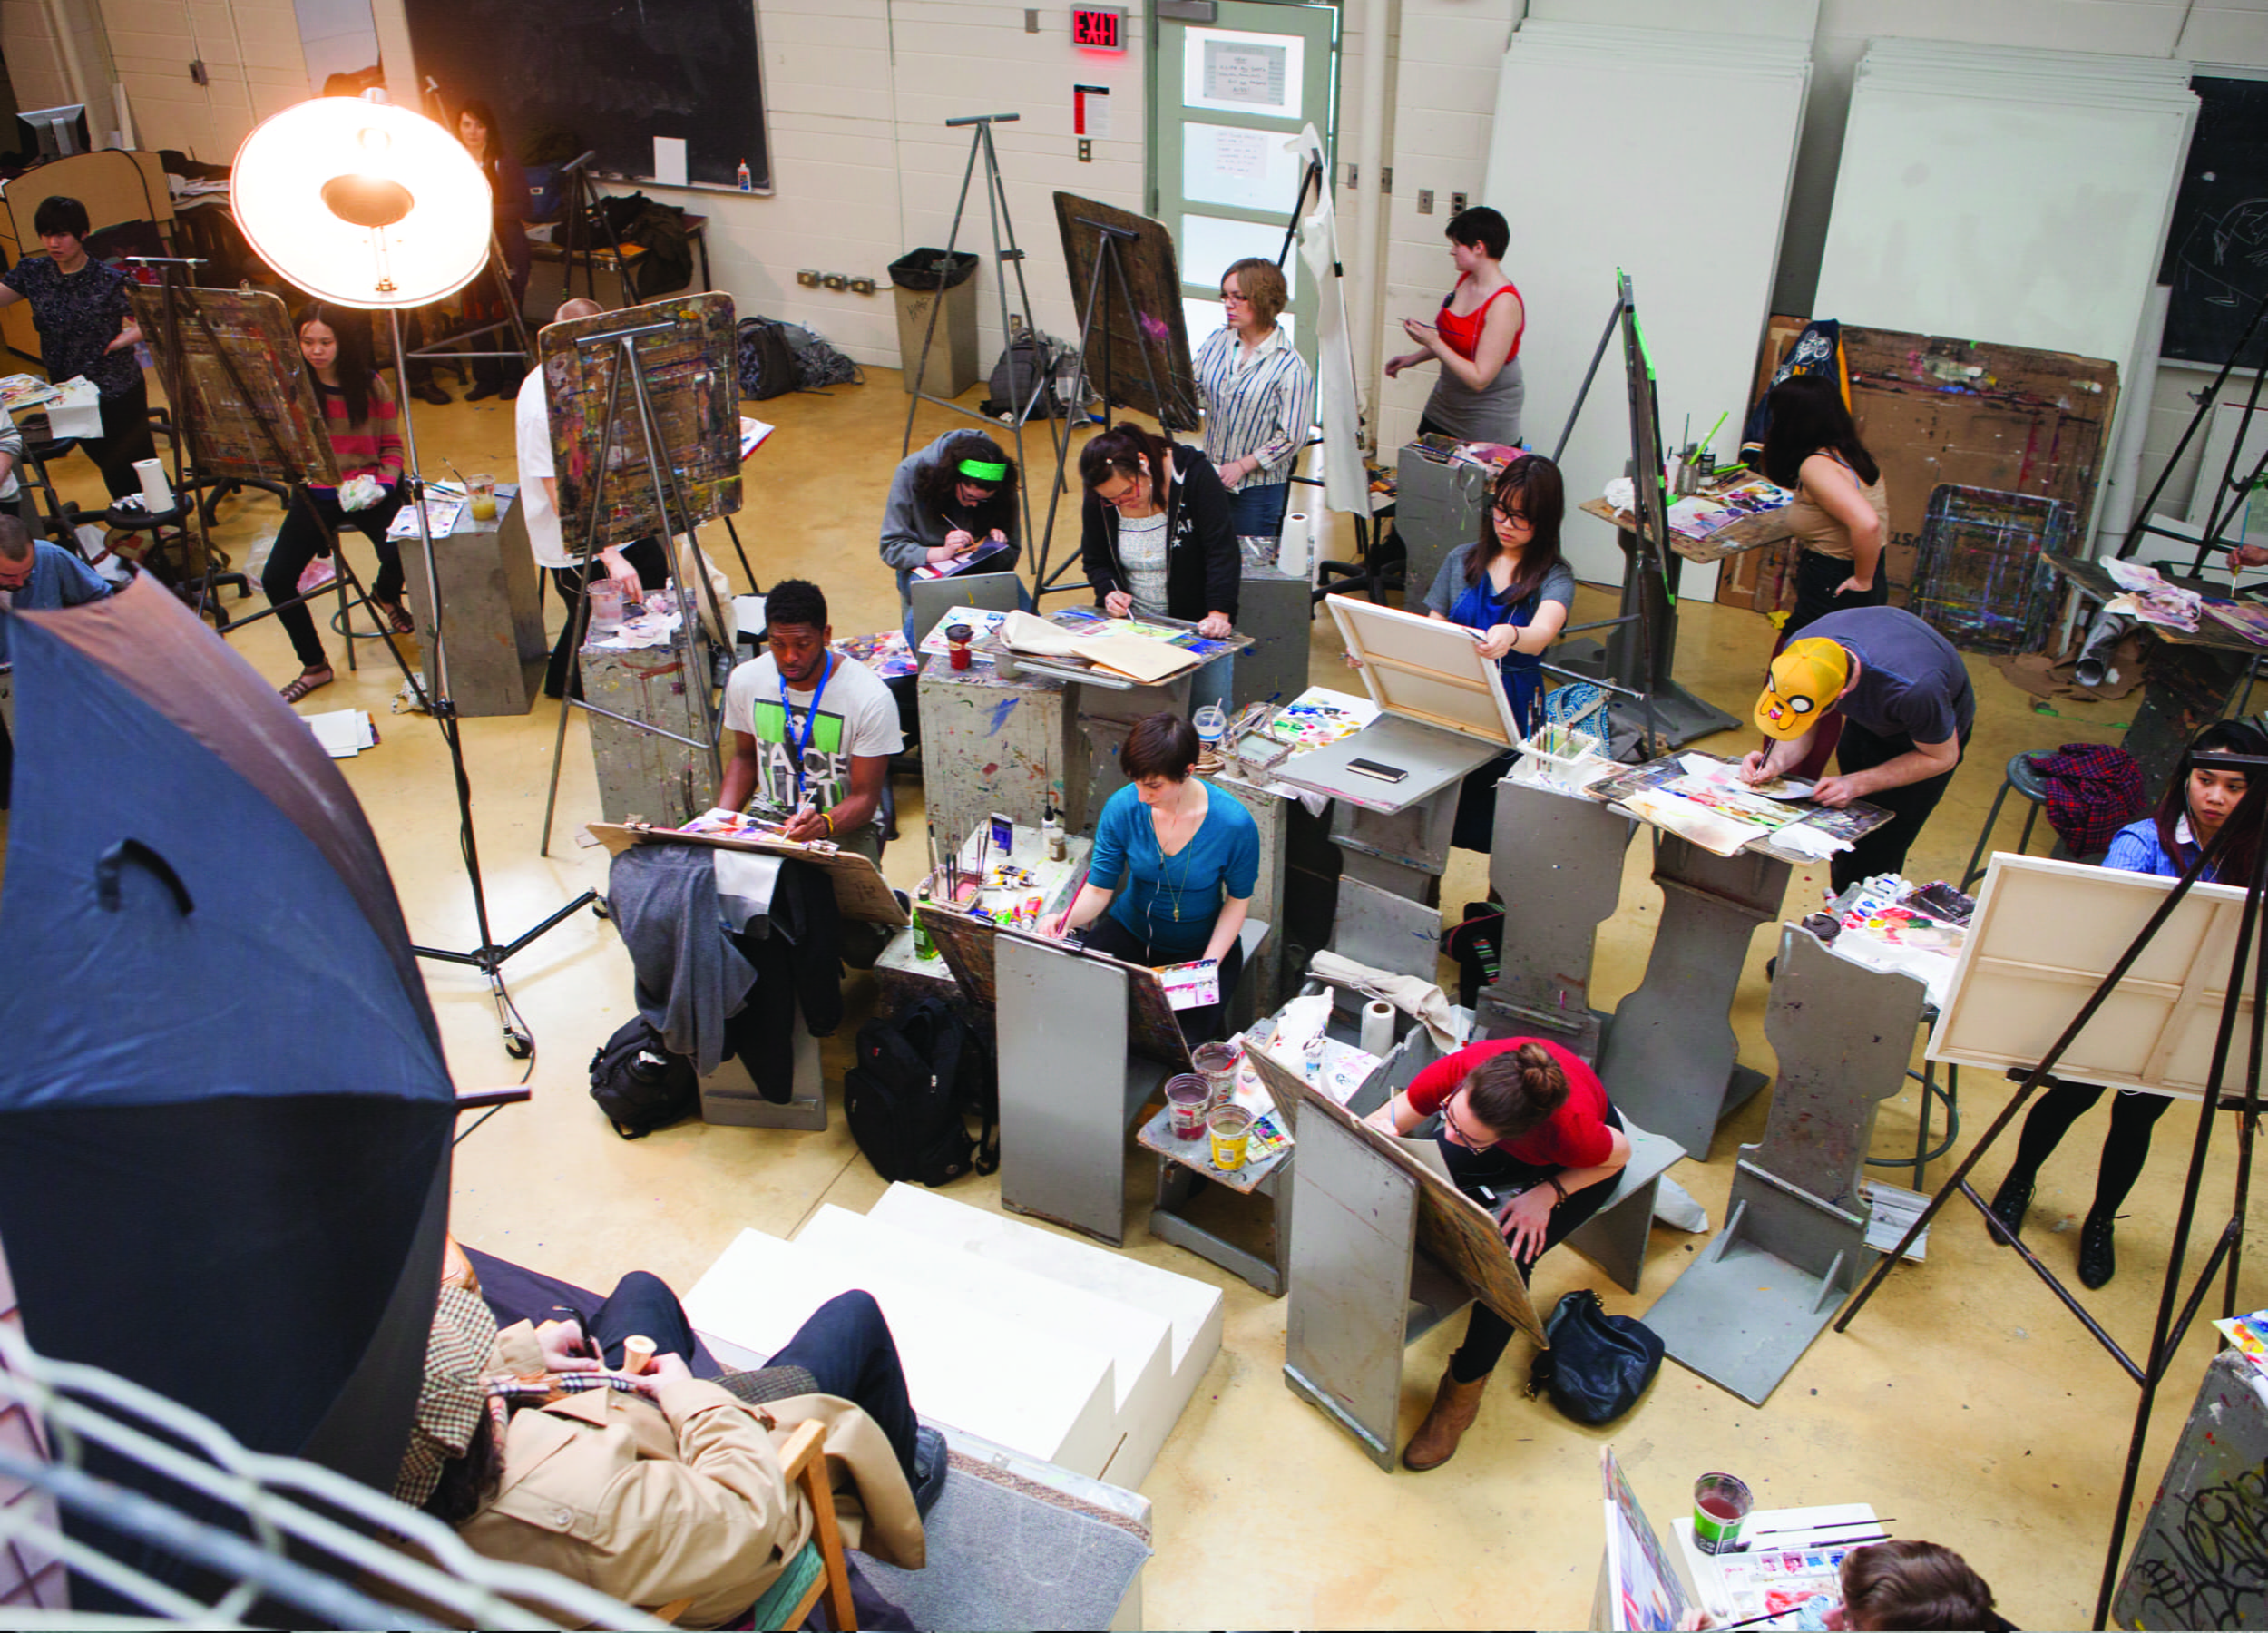 Illustration students working in a studio